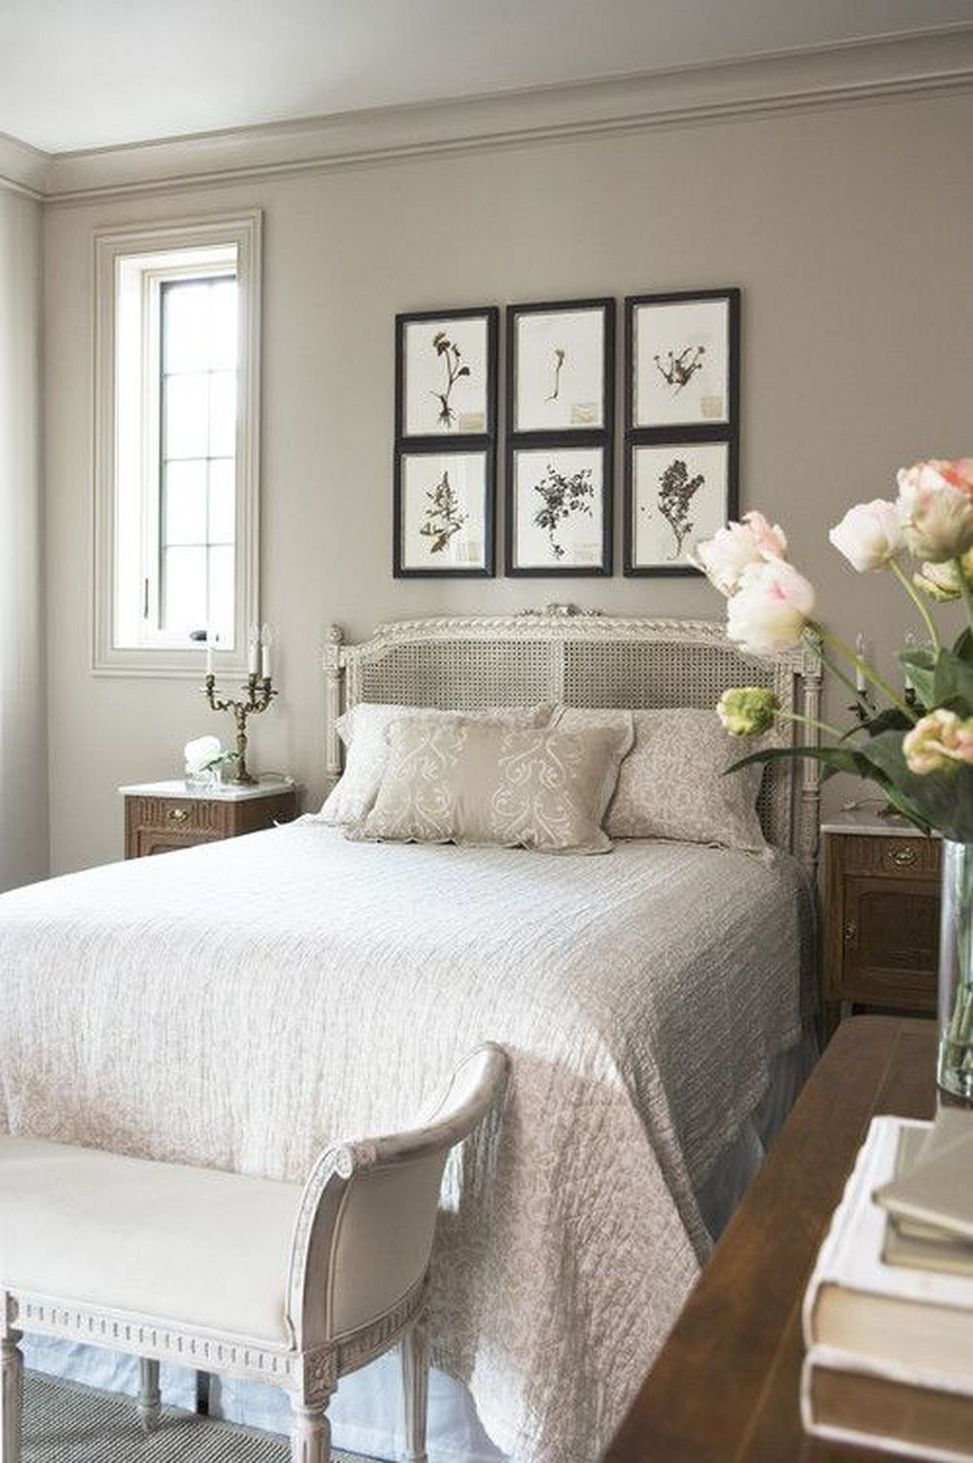 Neutral-colored bedroom with picture collage.